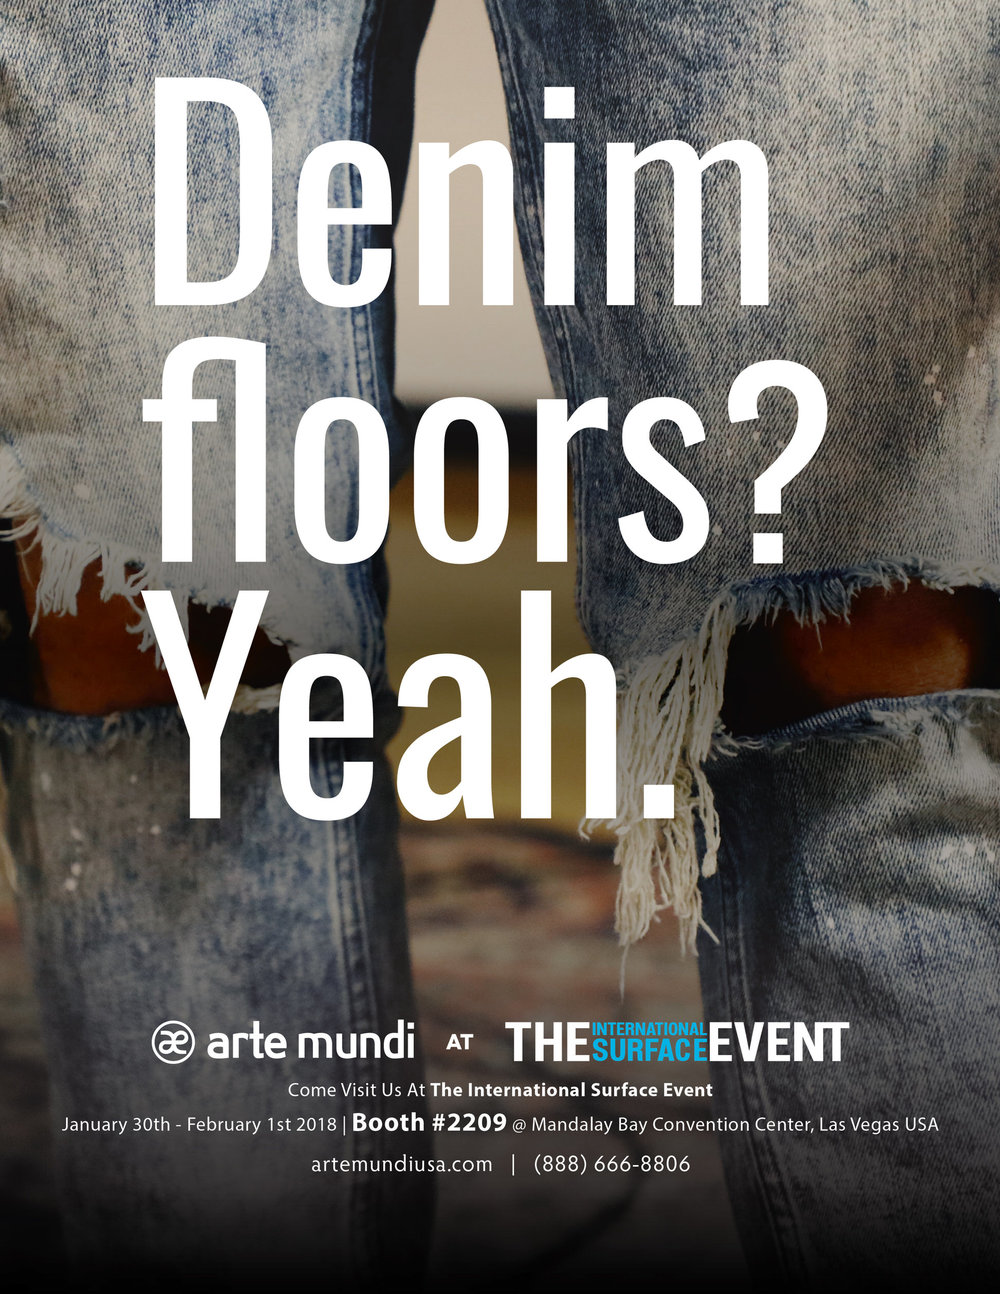 In this month's issue of Floor Covering News, we teased our new denim product flooring line.